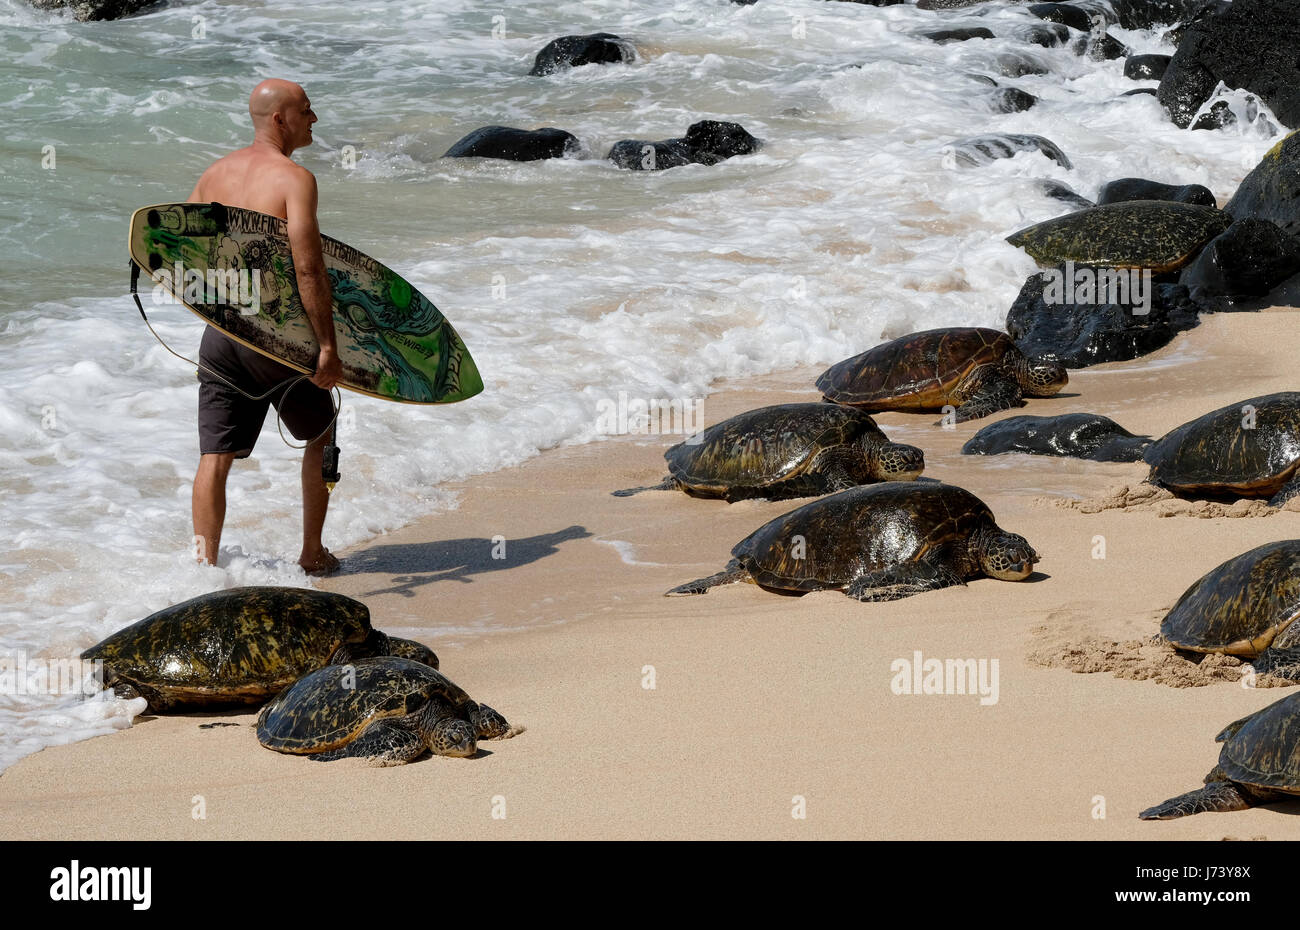 A surfer walks past a group of resting Hawaiian Green Sea Turtles at Hookipa Beach park, Paia, Maui, Hawaii. - Stock Image